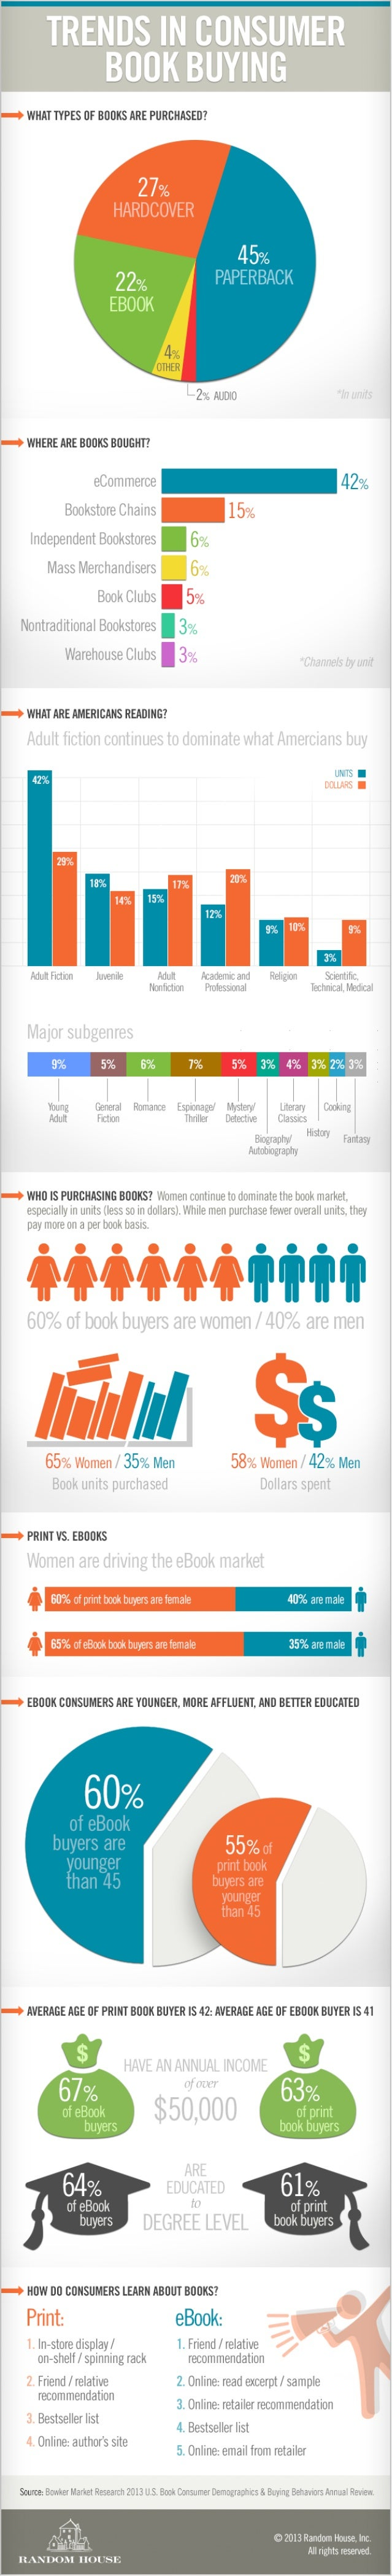 Trends in Consumer Book Buying [Infographic]